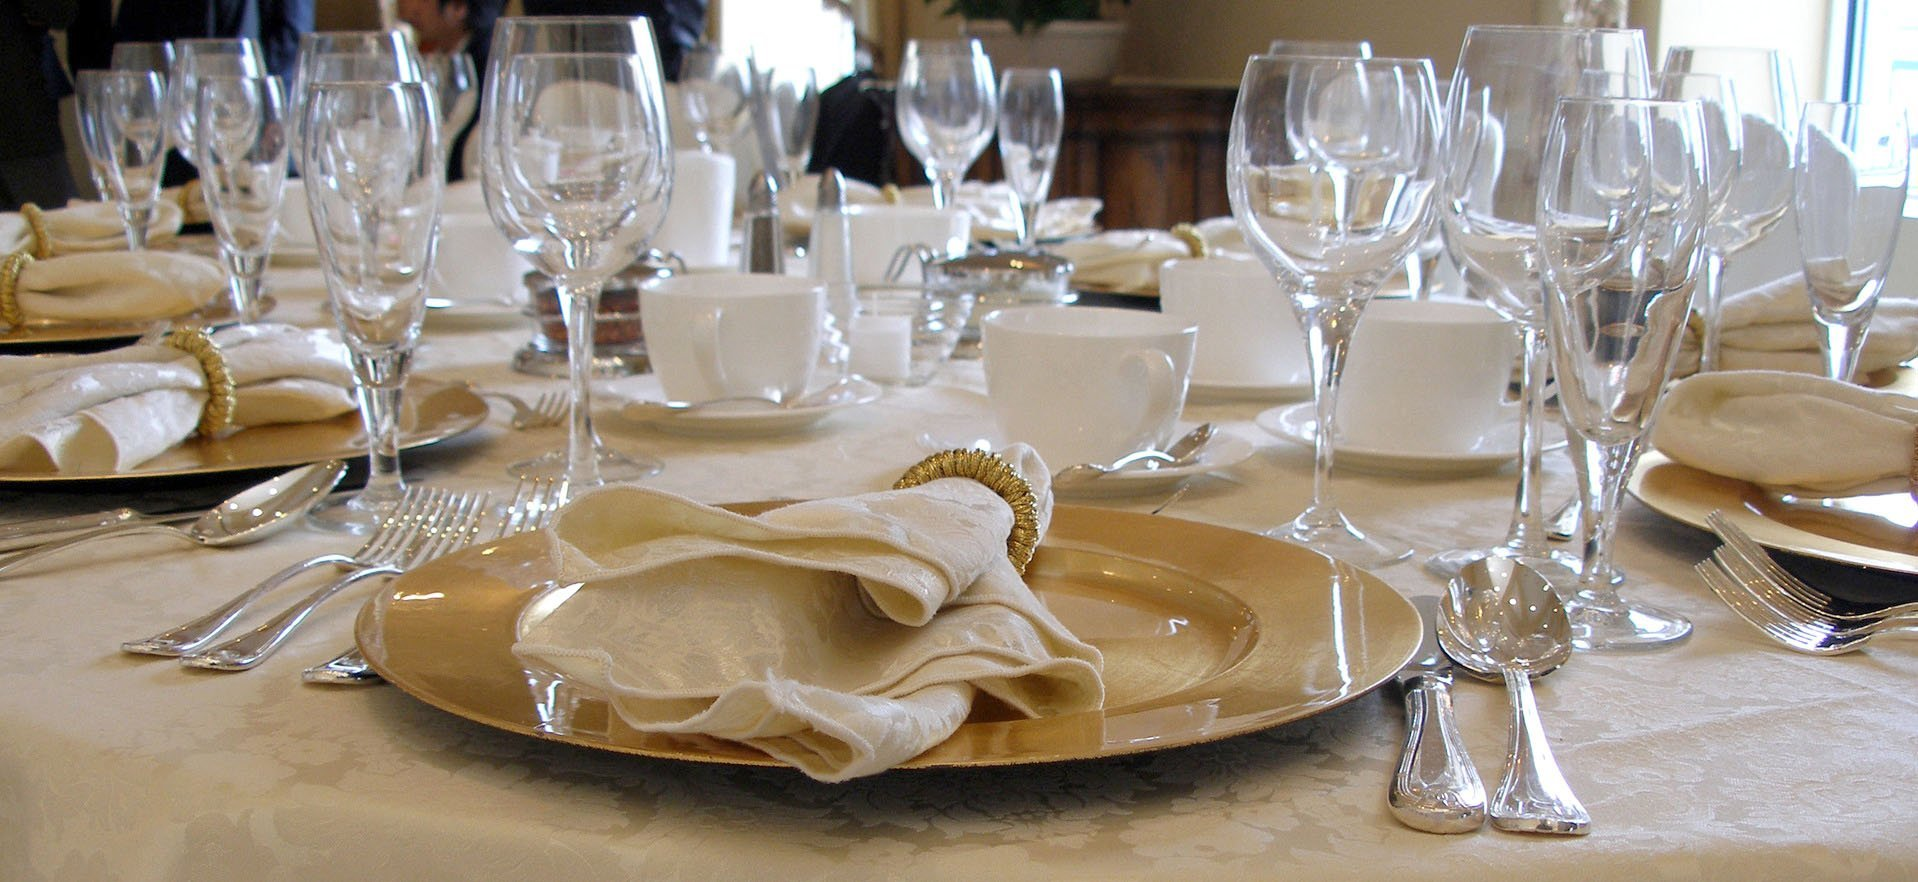 Beautiful table setting - Linen Hire - Monarch Laundry, York